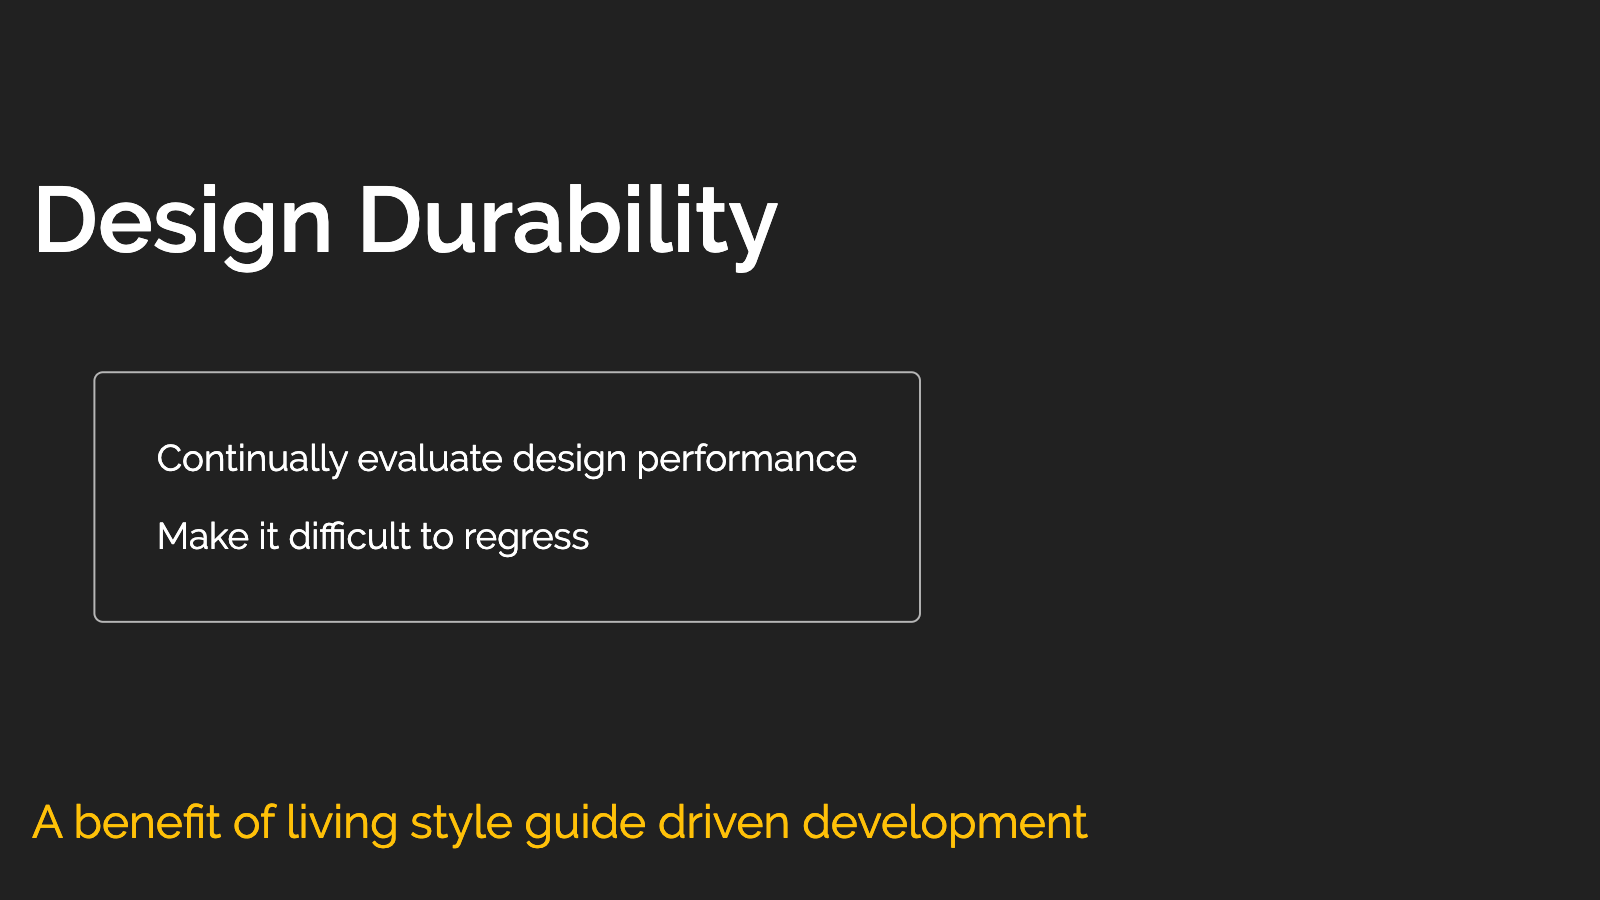 Slide content, Design durability, a benefit of living style guide driven development